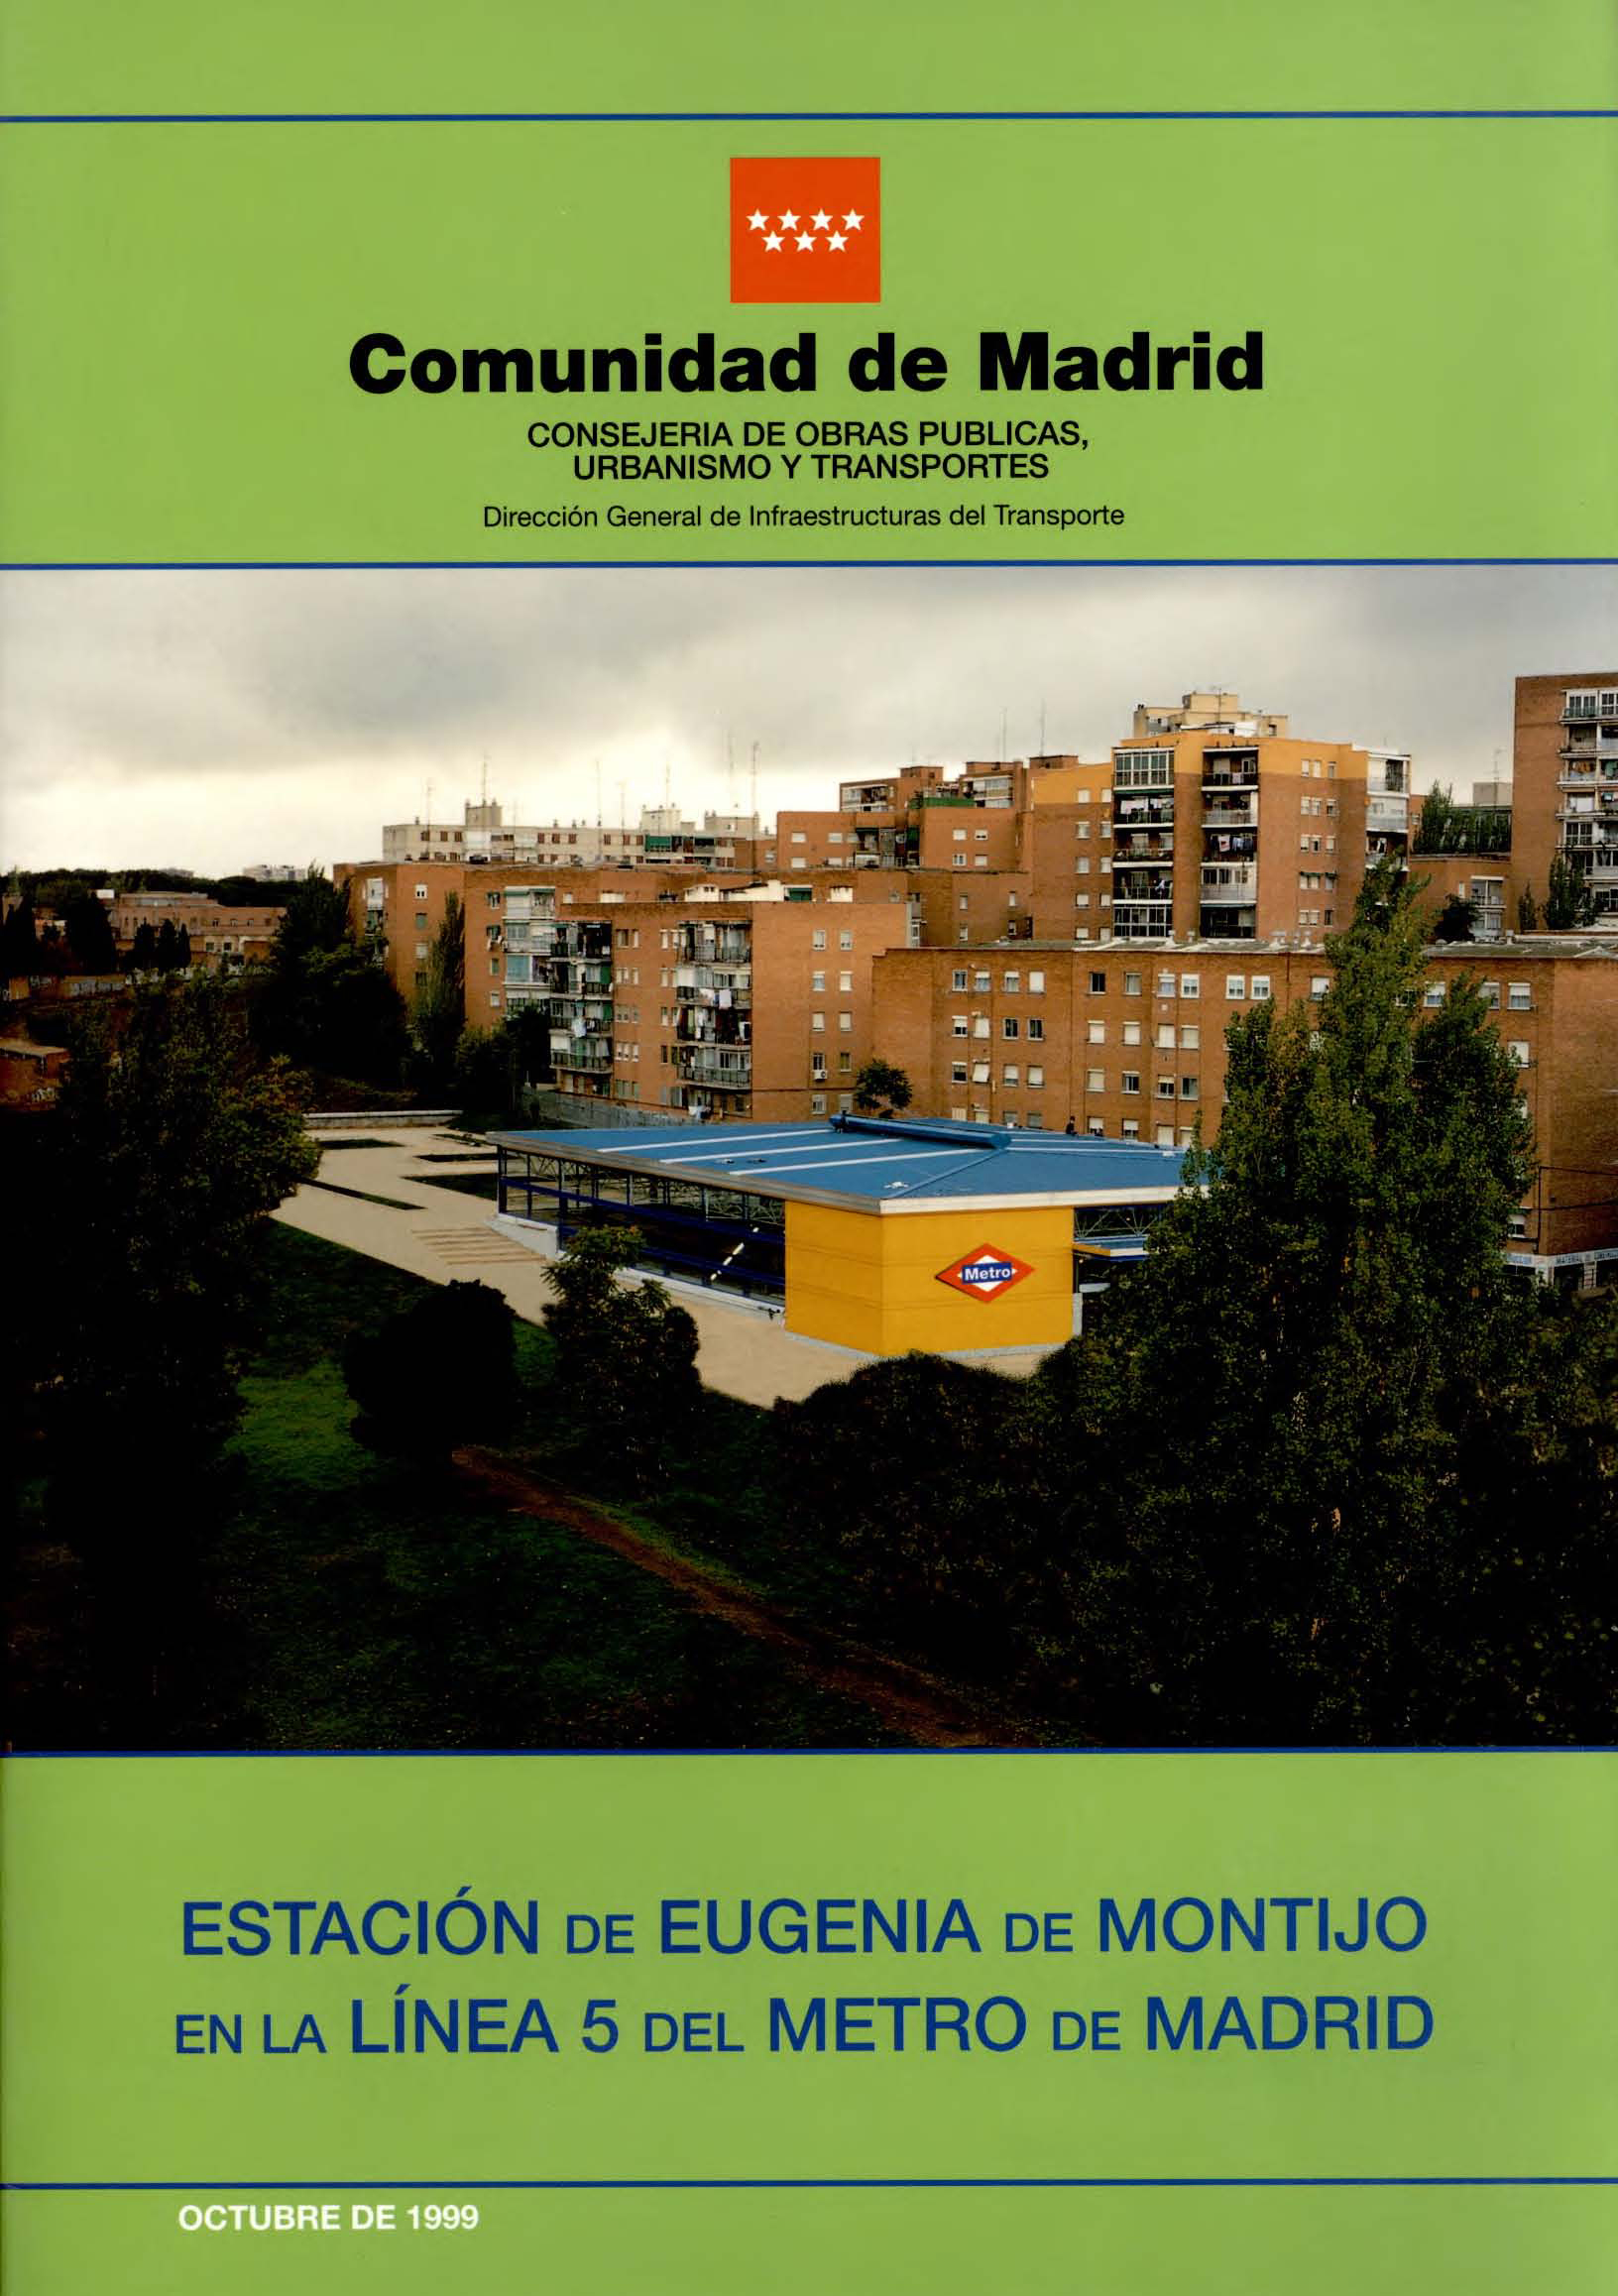 Carátula folleto estación Eugenia de Montijo